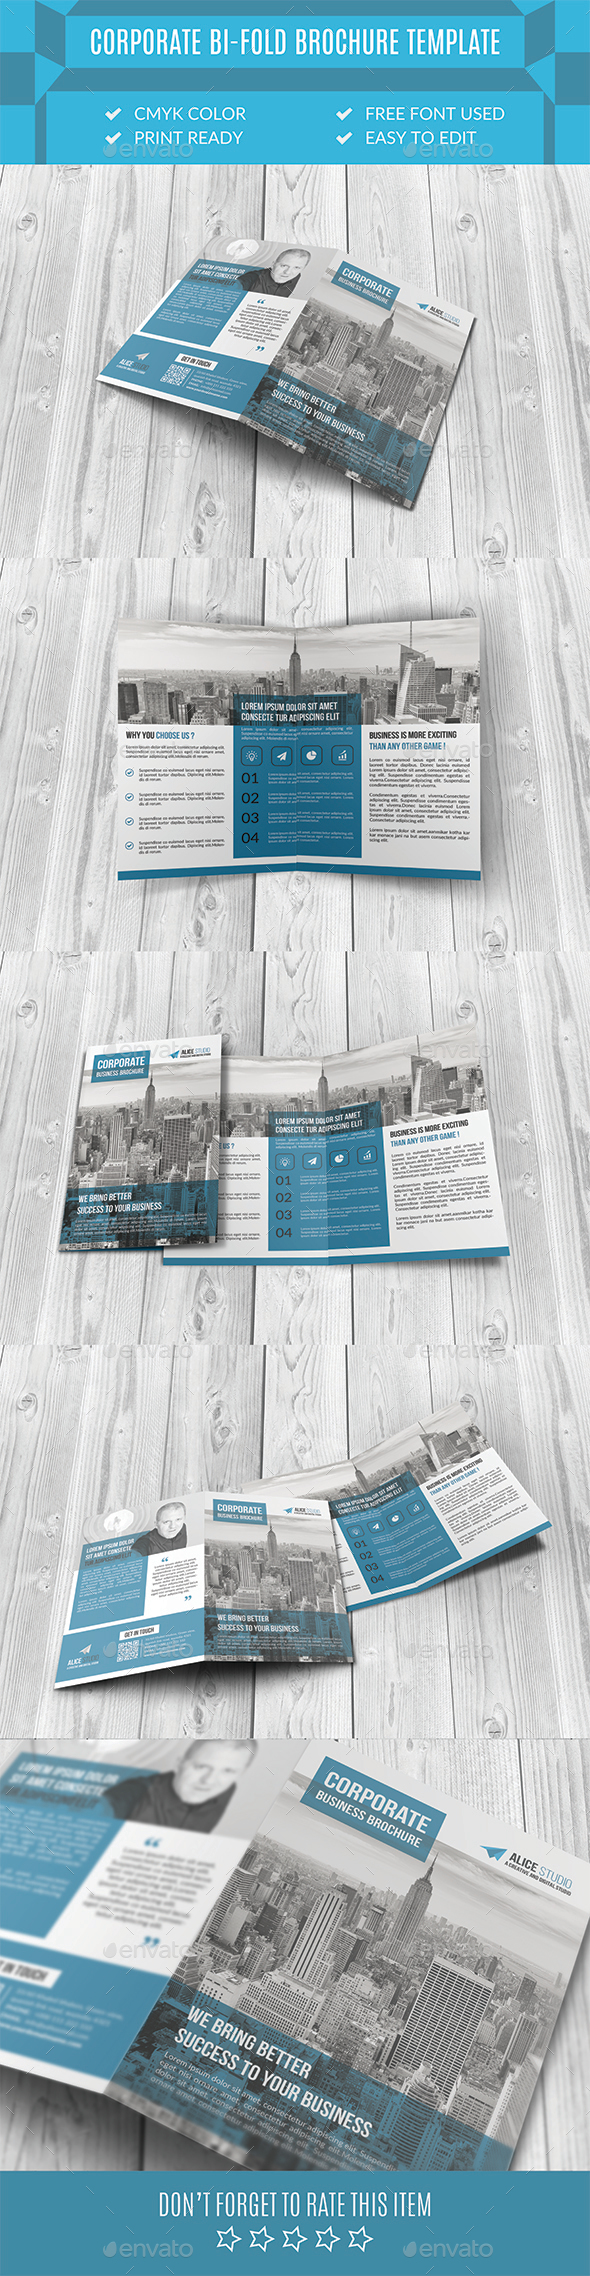 Corporate Bi-Fold Brochure Template - Corporate Brochures